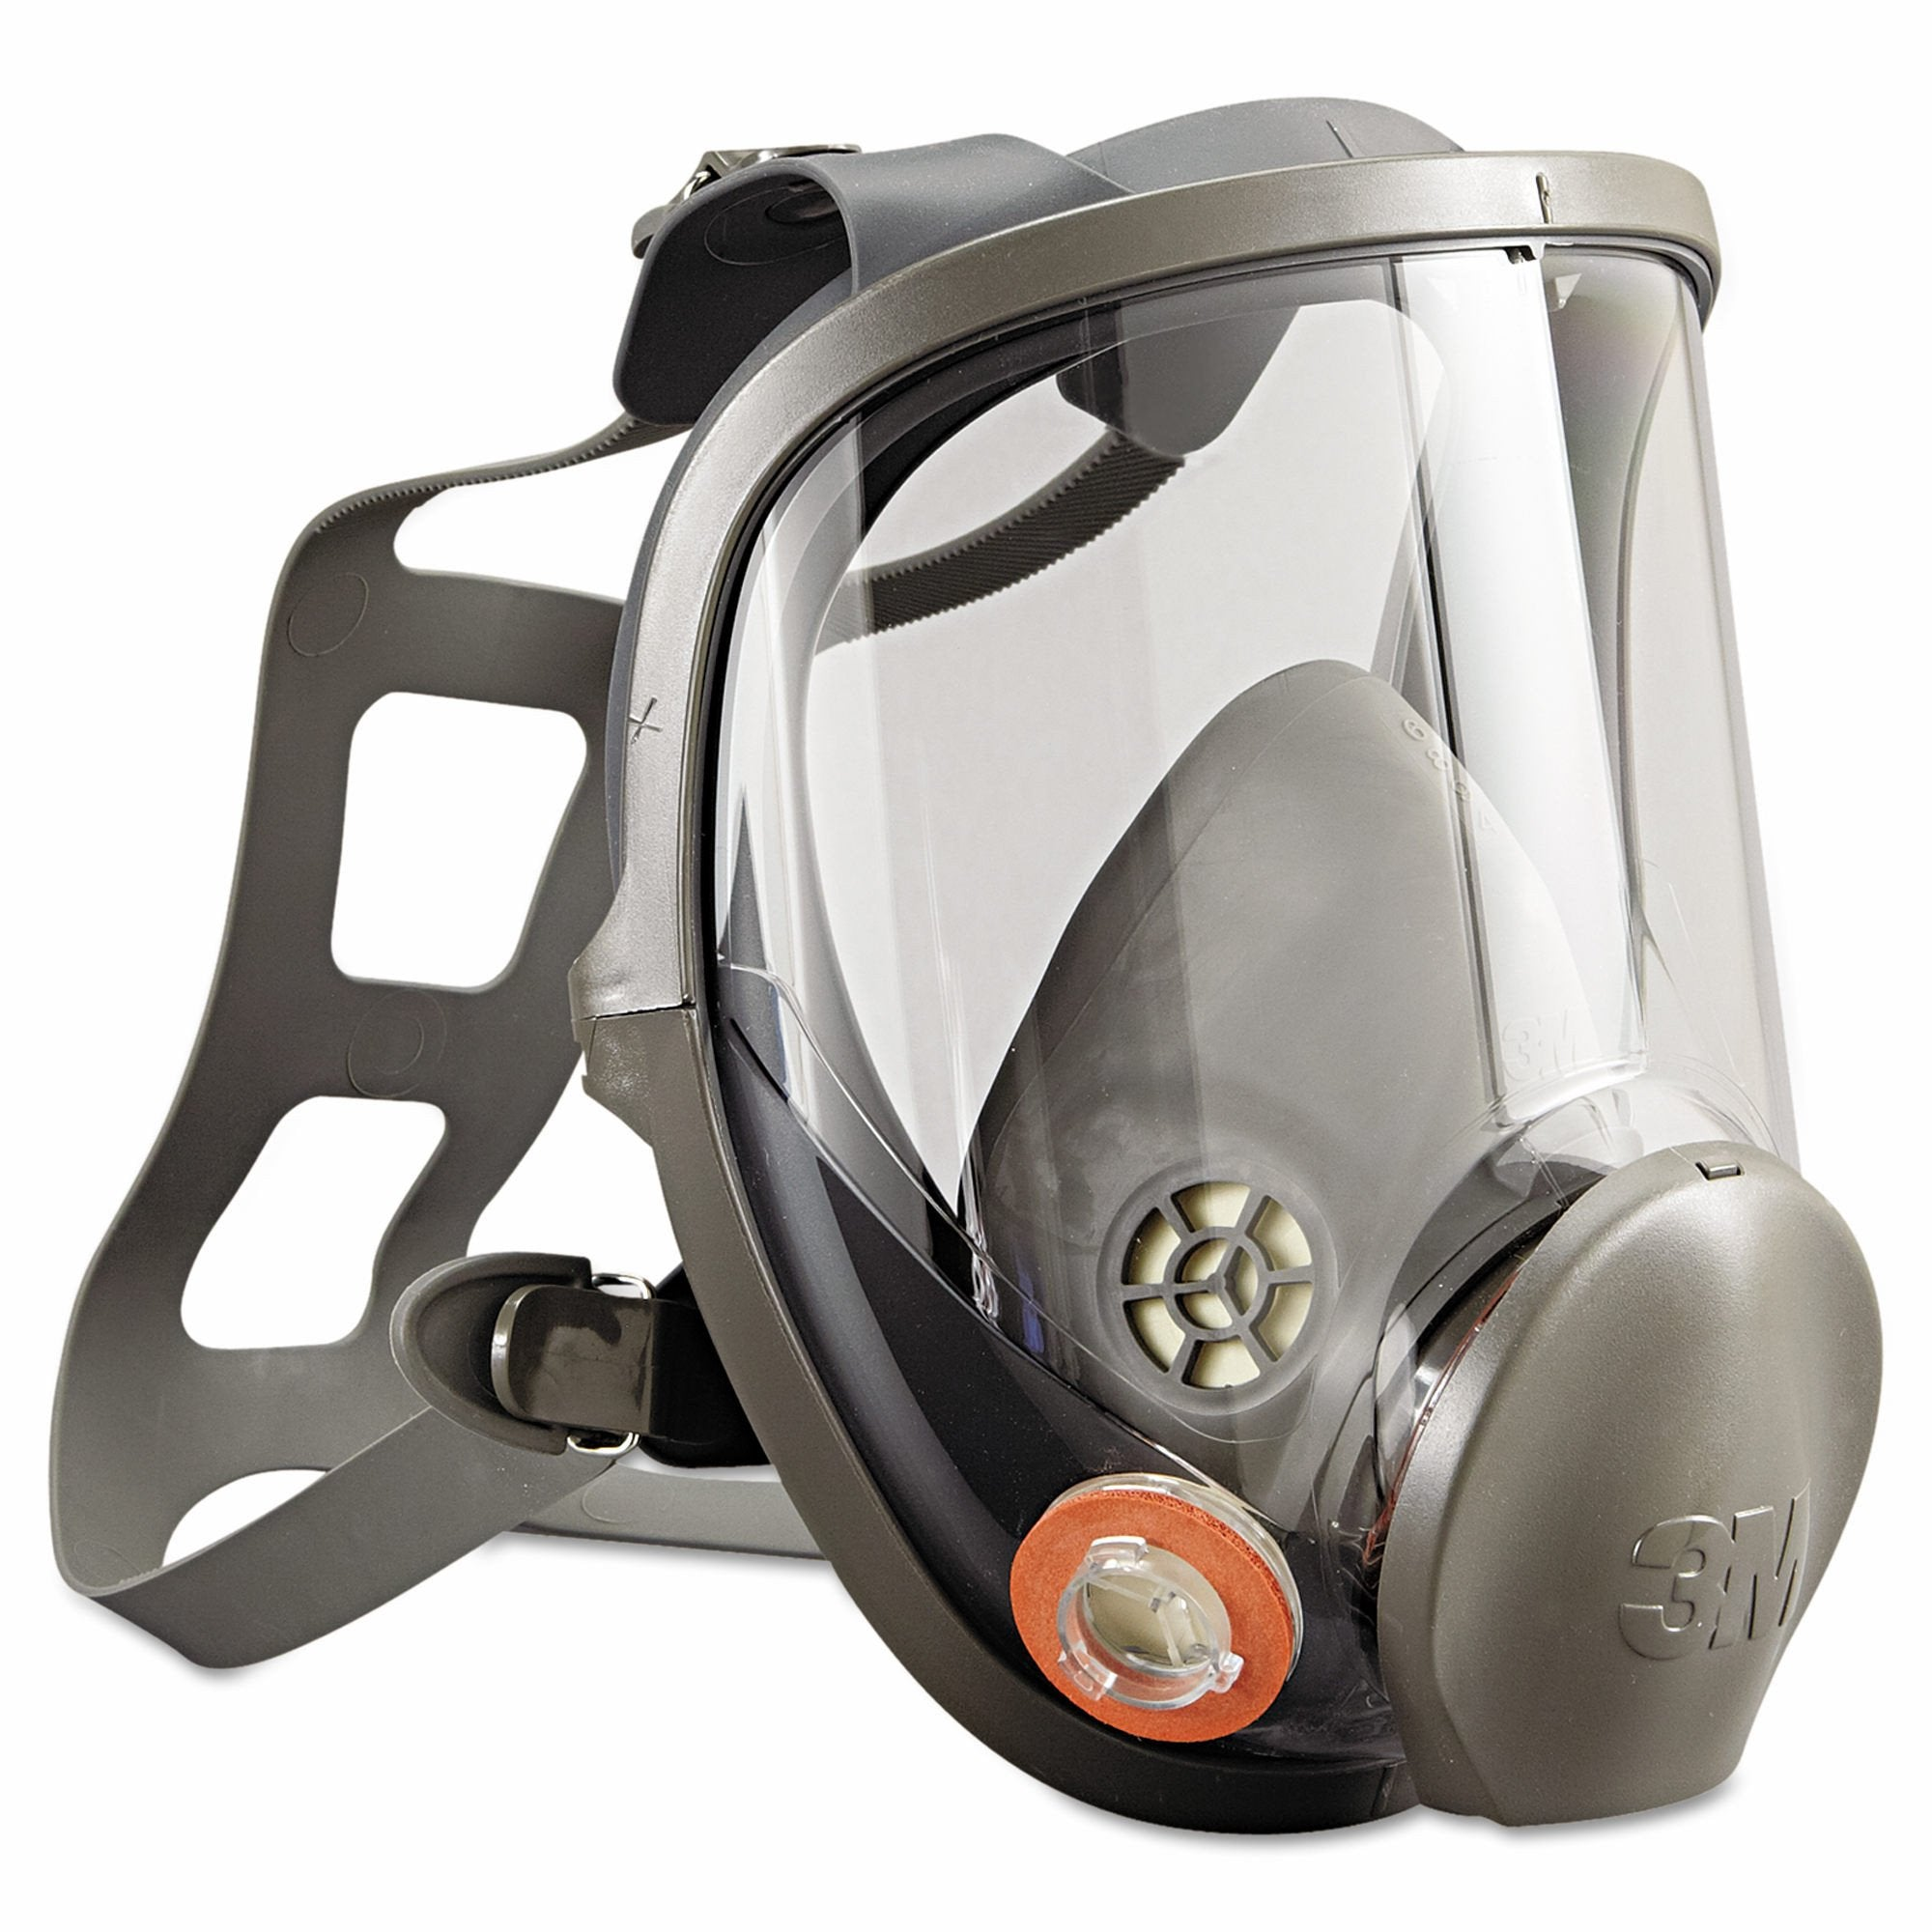 3m 6000 series mask small